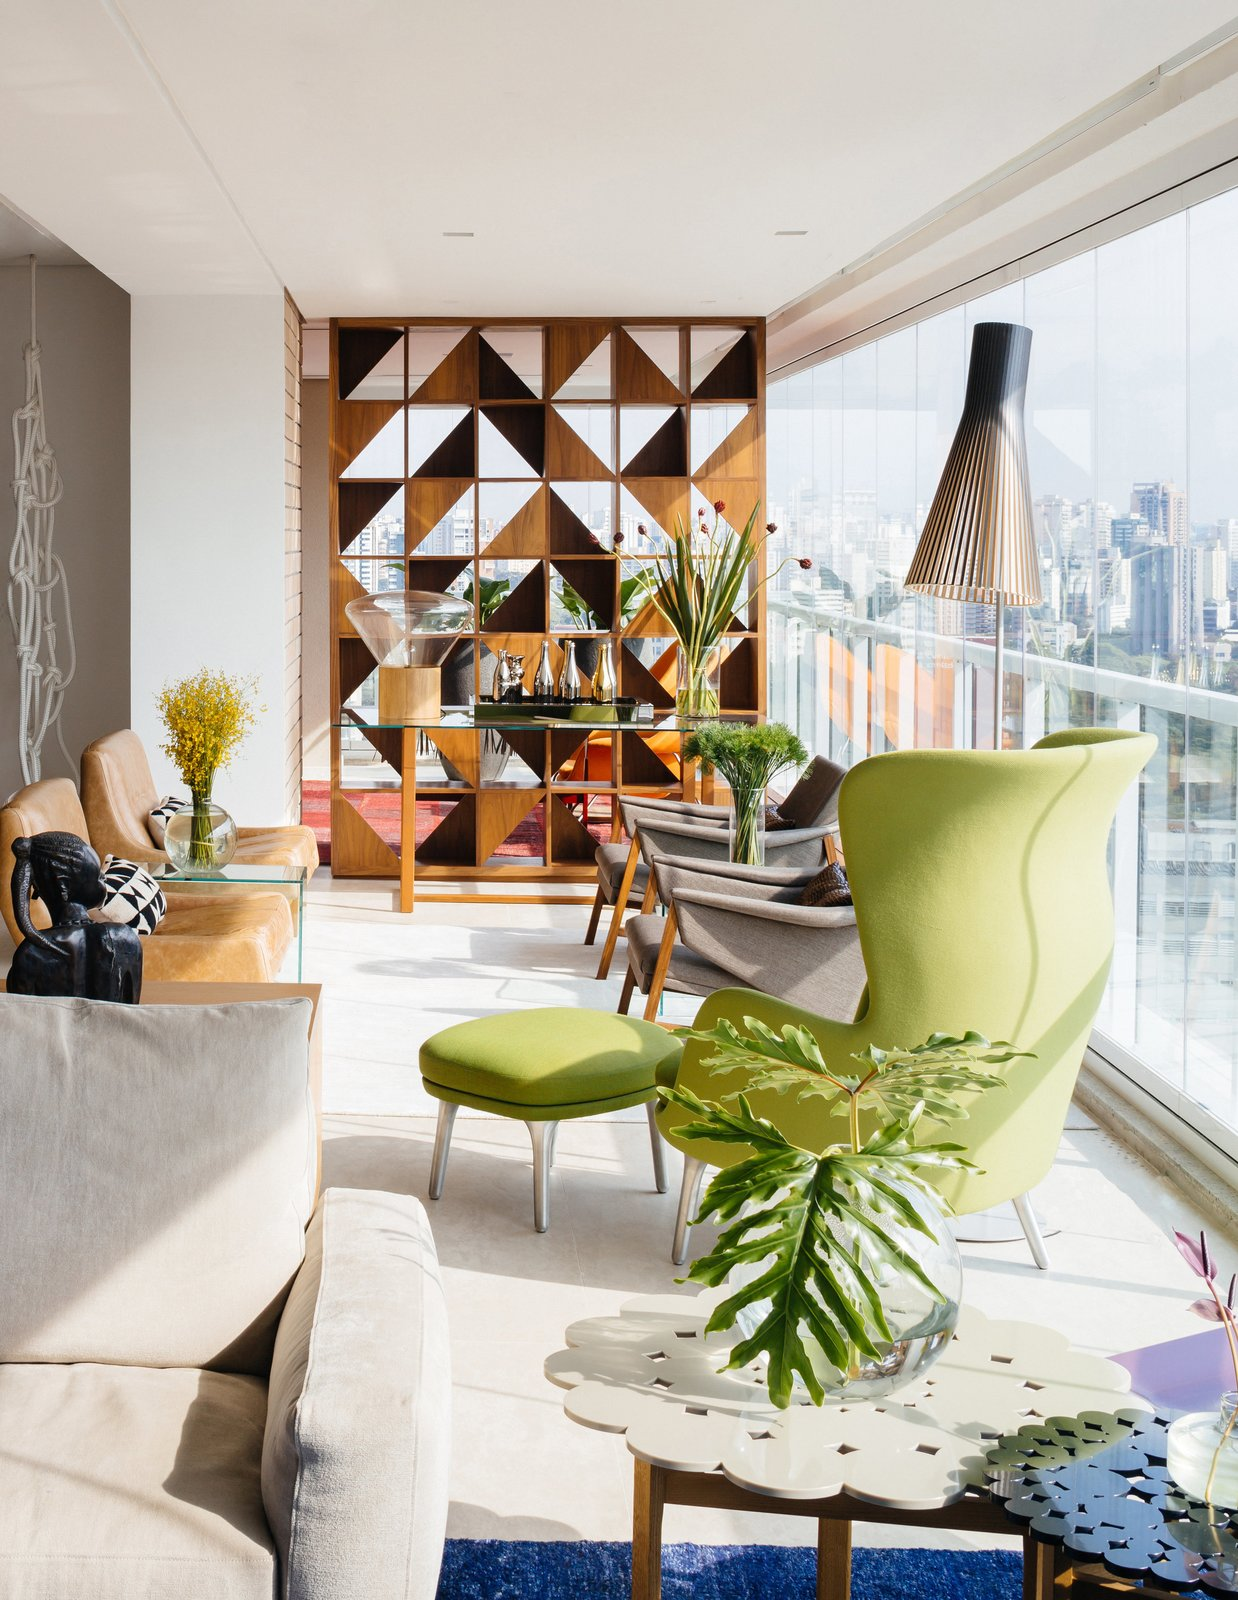 FCstudio updated the 5,000-square-foot apartment by removing several walls in central areas to clarify views and simplify the overall floor plan. The firm also custom-designed the Brazilian walnut room divider with a striking geometric pattern that allows light to traverse throughout the living area.